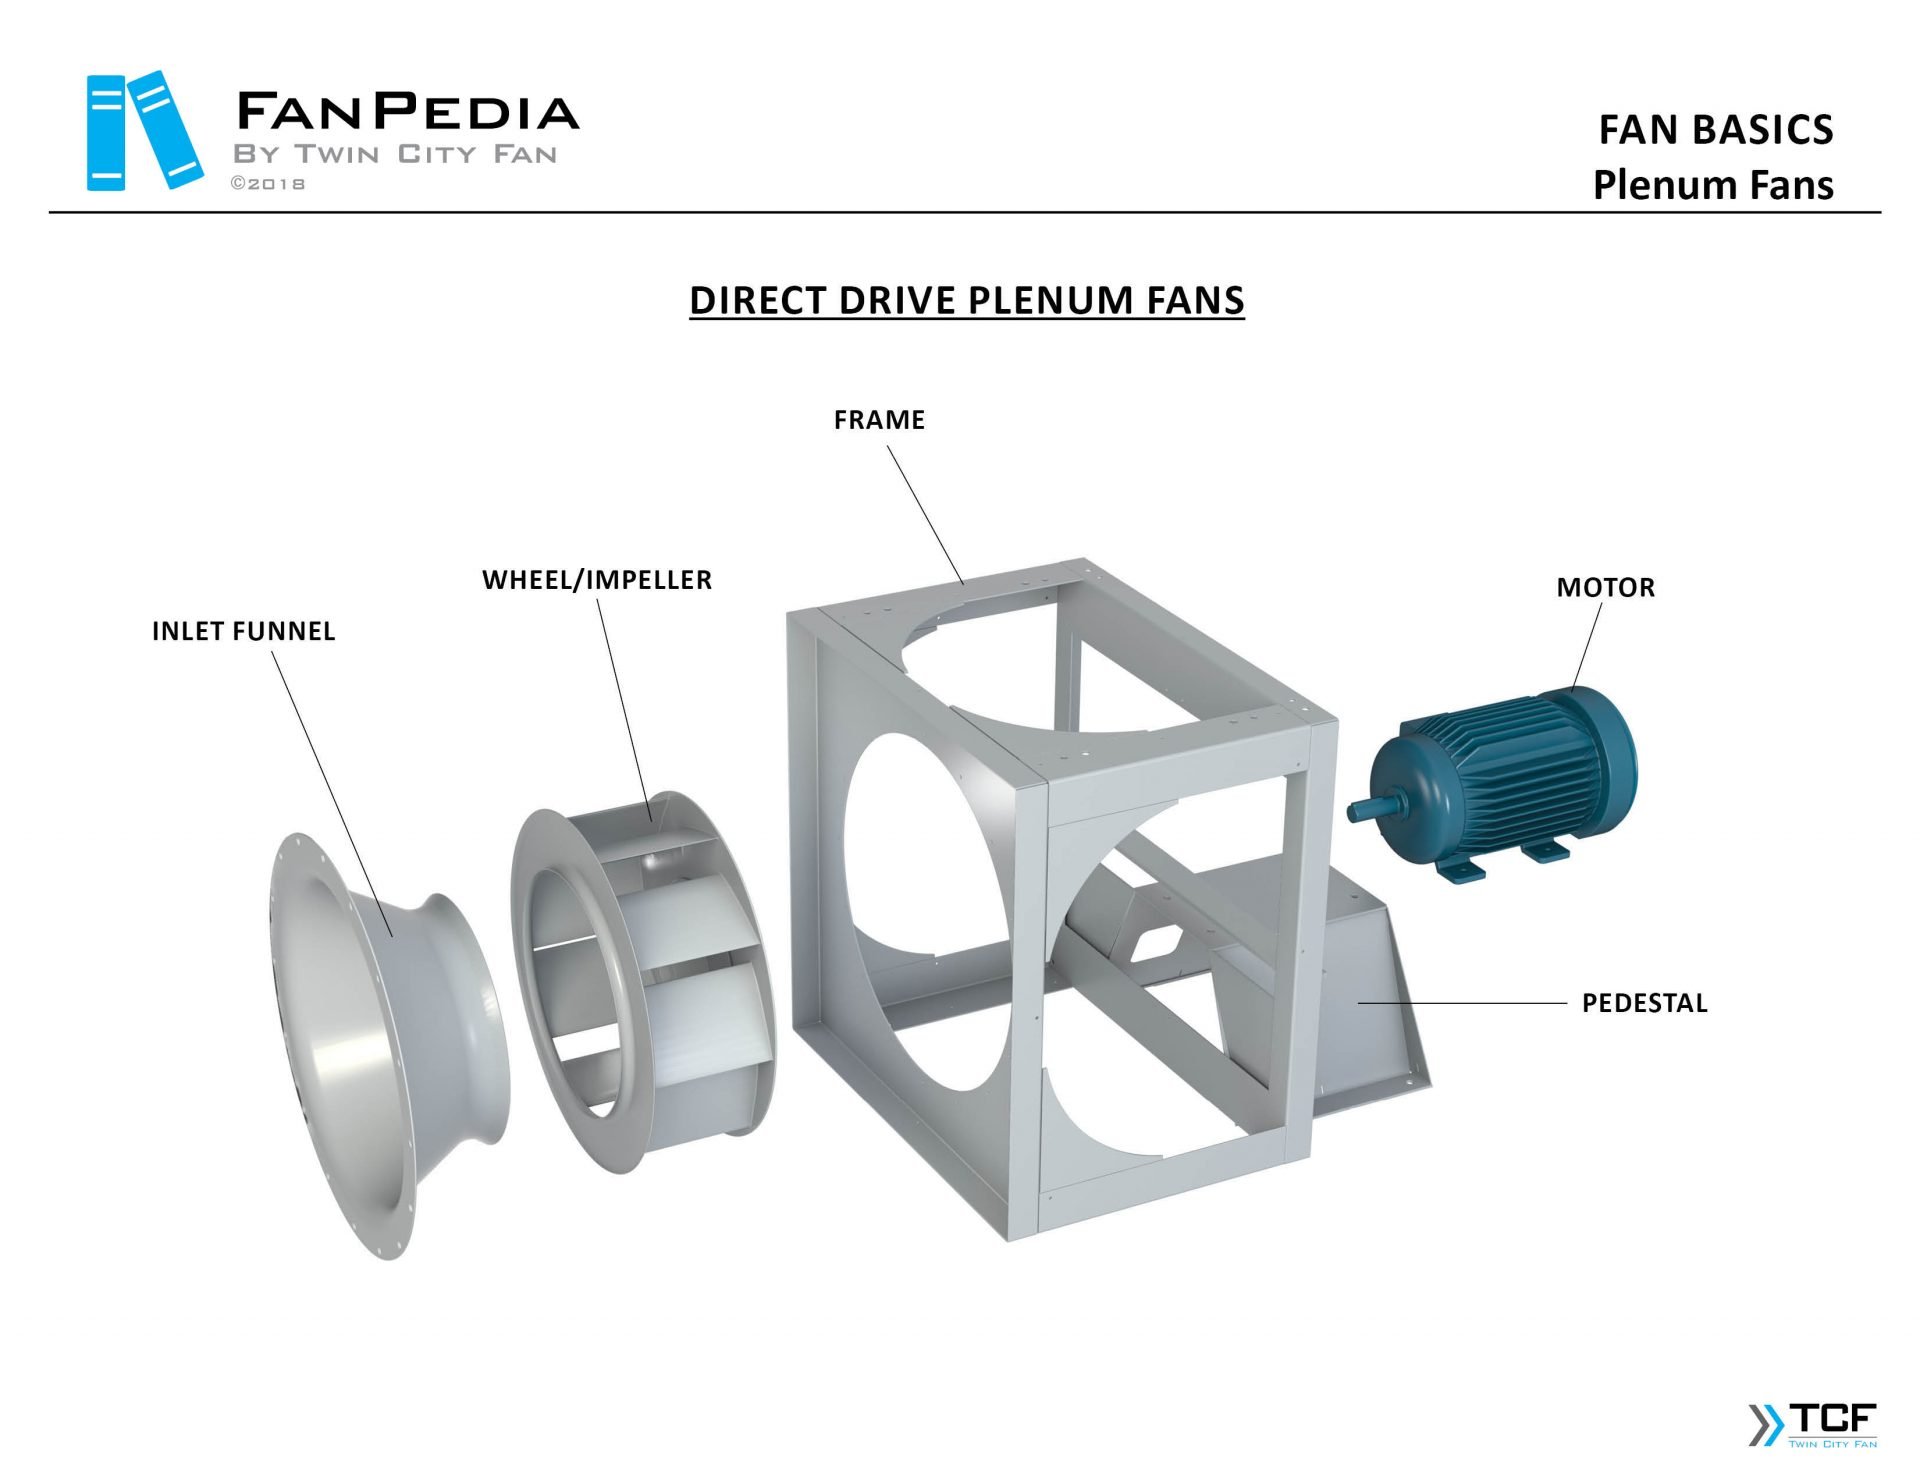 Fan Basics - Exploded Views5